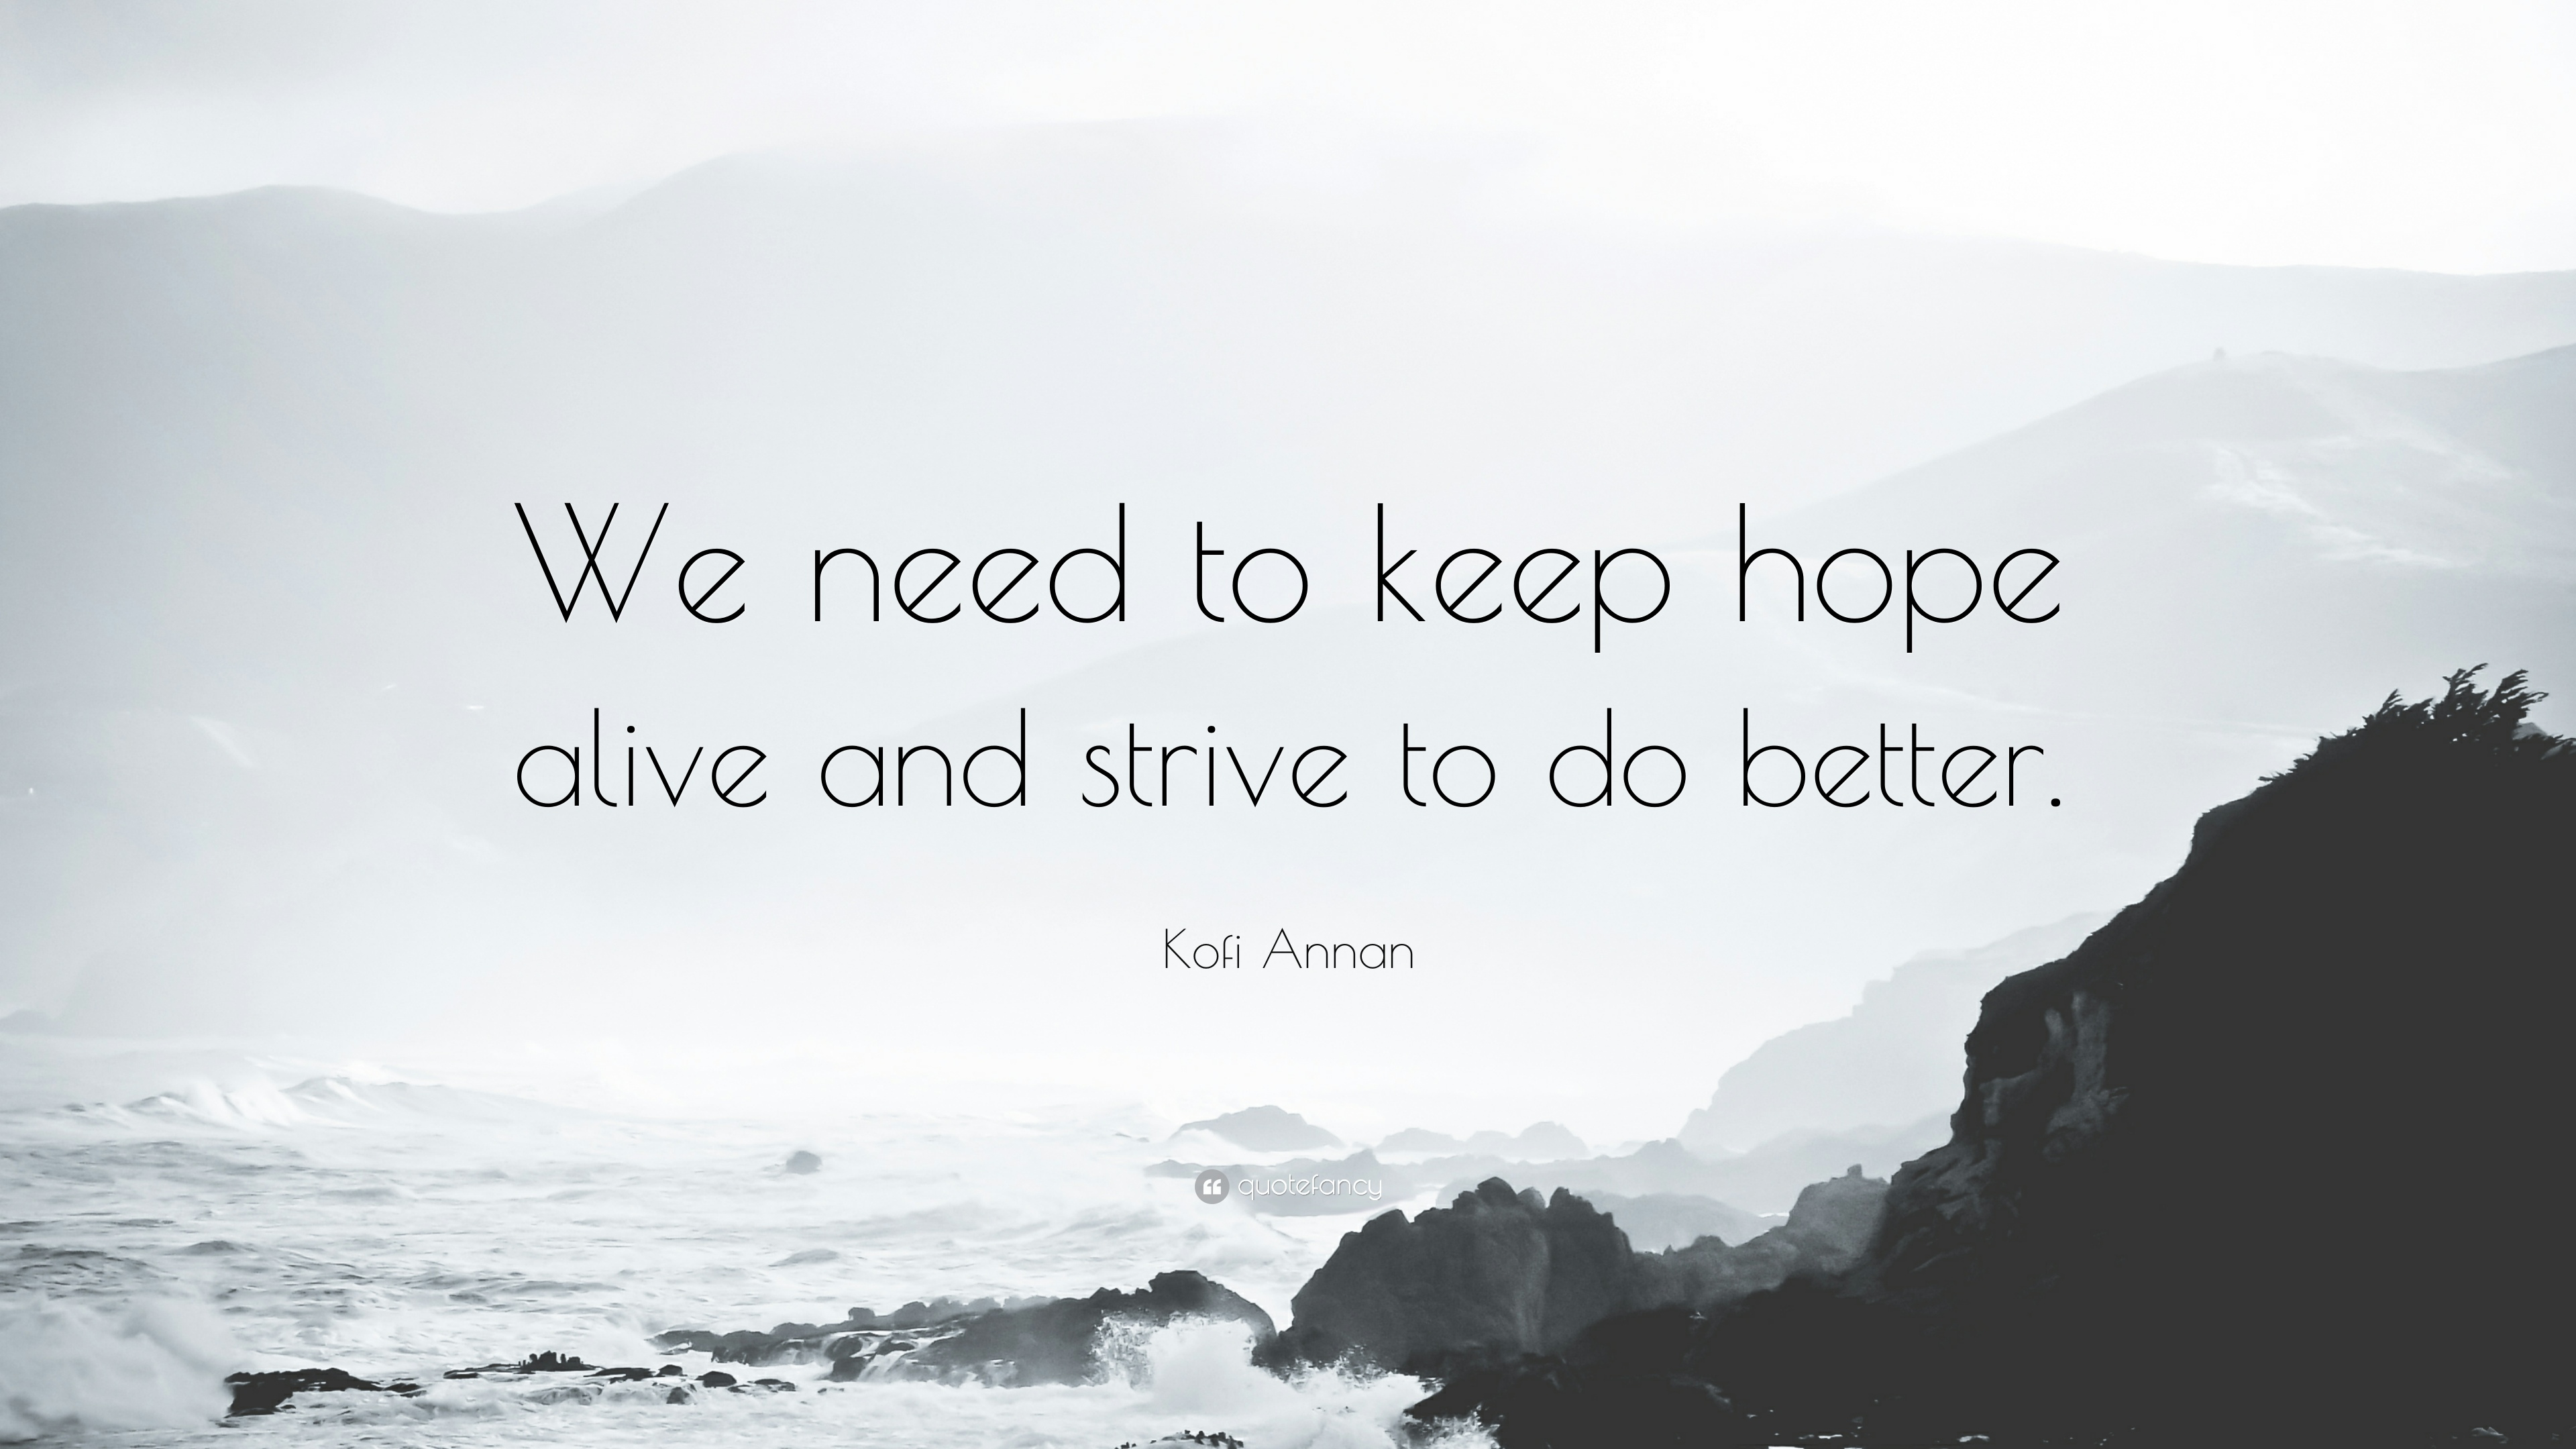 kofi annan quote we need to keep hope alive and strive to do better